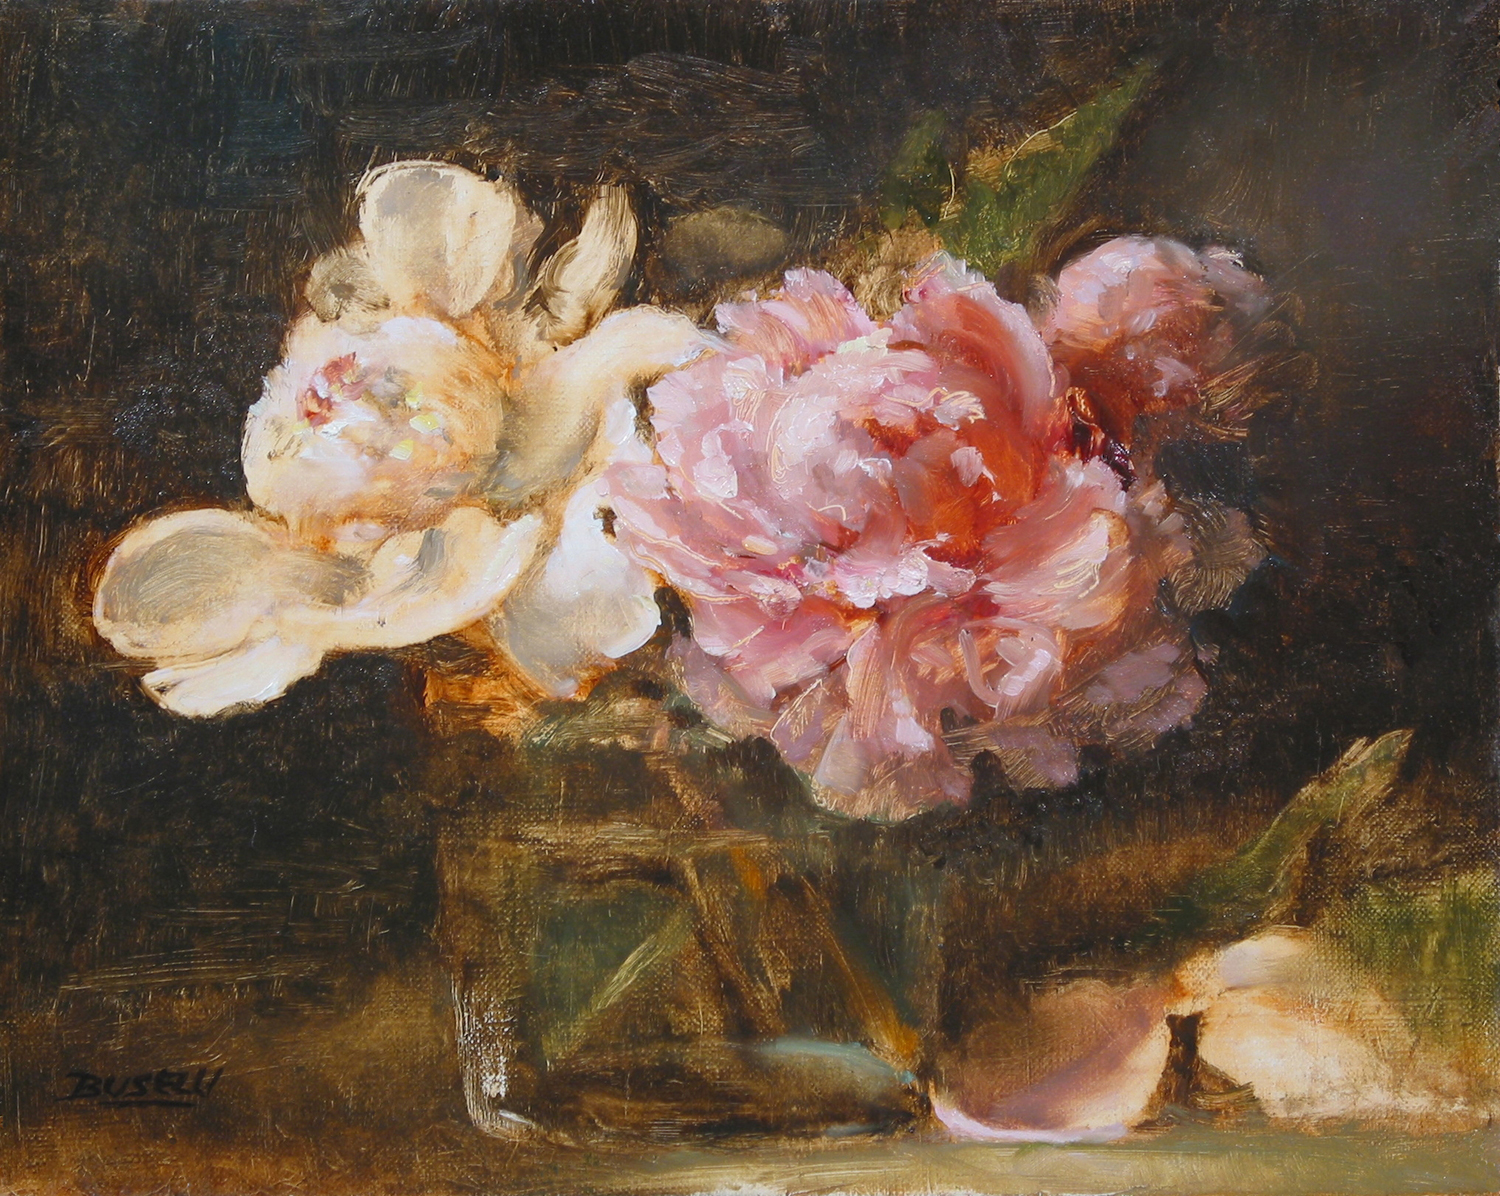 "PEONIES    NATIONAL ACADEMY OF DESIGN 175TH JURIED EXHIBITION    OIL PAINTERS OF AMERICA - WINSOR & NEWTON AWARD OF EXCELLENCE    oil on linen         8"" x 10"""